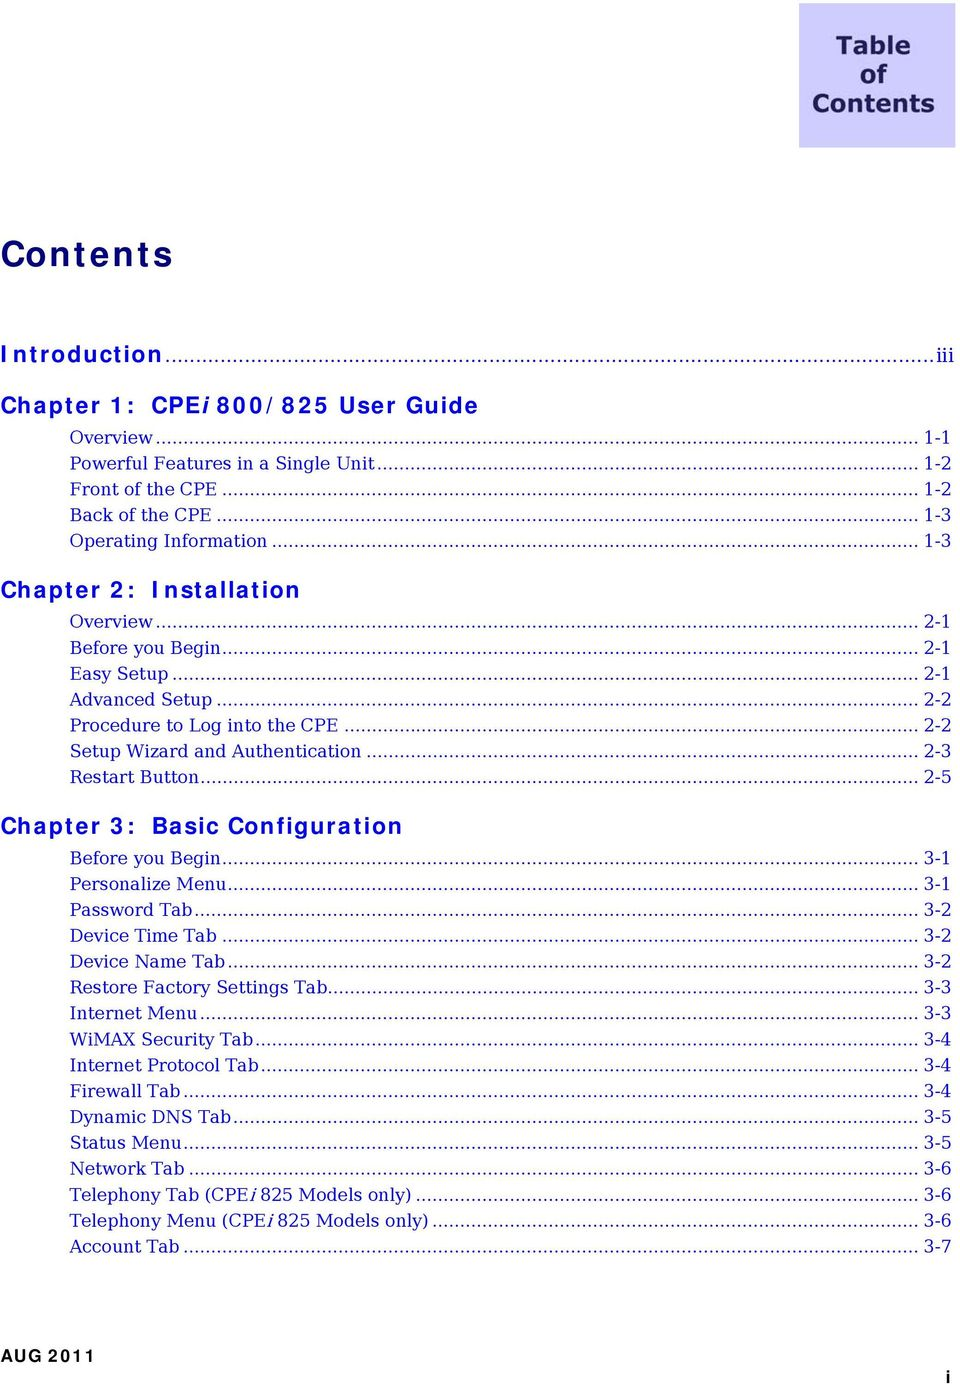 .. 2-5 Chapter 3: Basic Configuration Before you Begin... 3-1 Personalize Menu... 3-1 Password Tab... 3-2 Device Time Tab... 3-2 Device Name Tab... 3-2 Restore Factory Settings Tab... 3-3 Internet Menu.